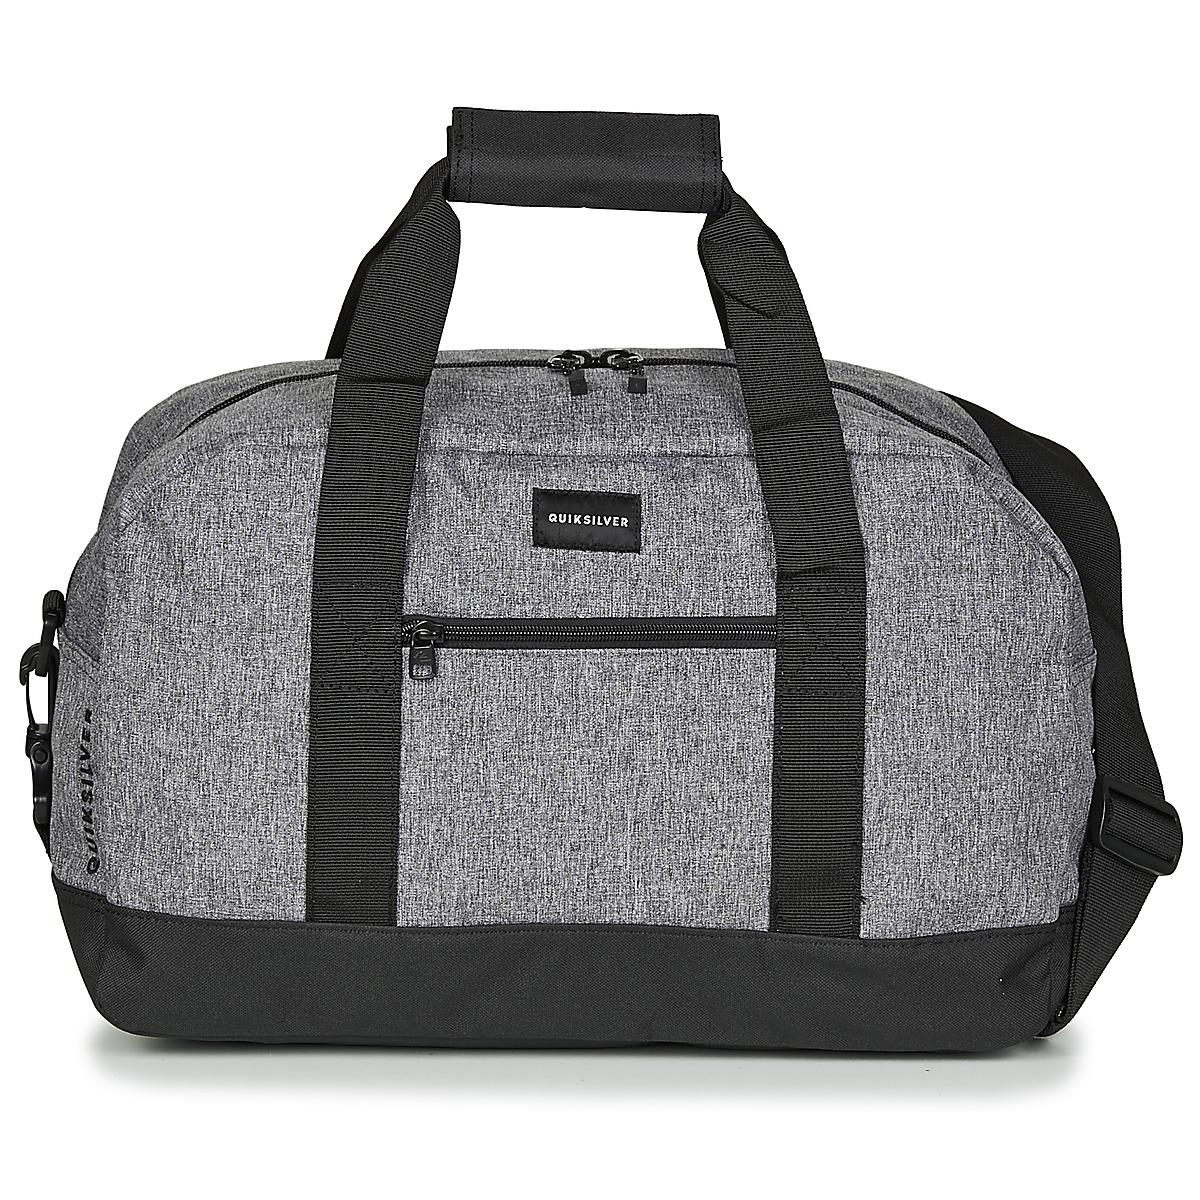 86257804f44 ... II DUFFLE BAG BLACK premium selection 42997 a98bf  Quiksilver Small  Shelter Mens Travel Bag In Grey in Gray for quality design 2d868 8aeb1 ...